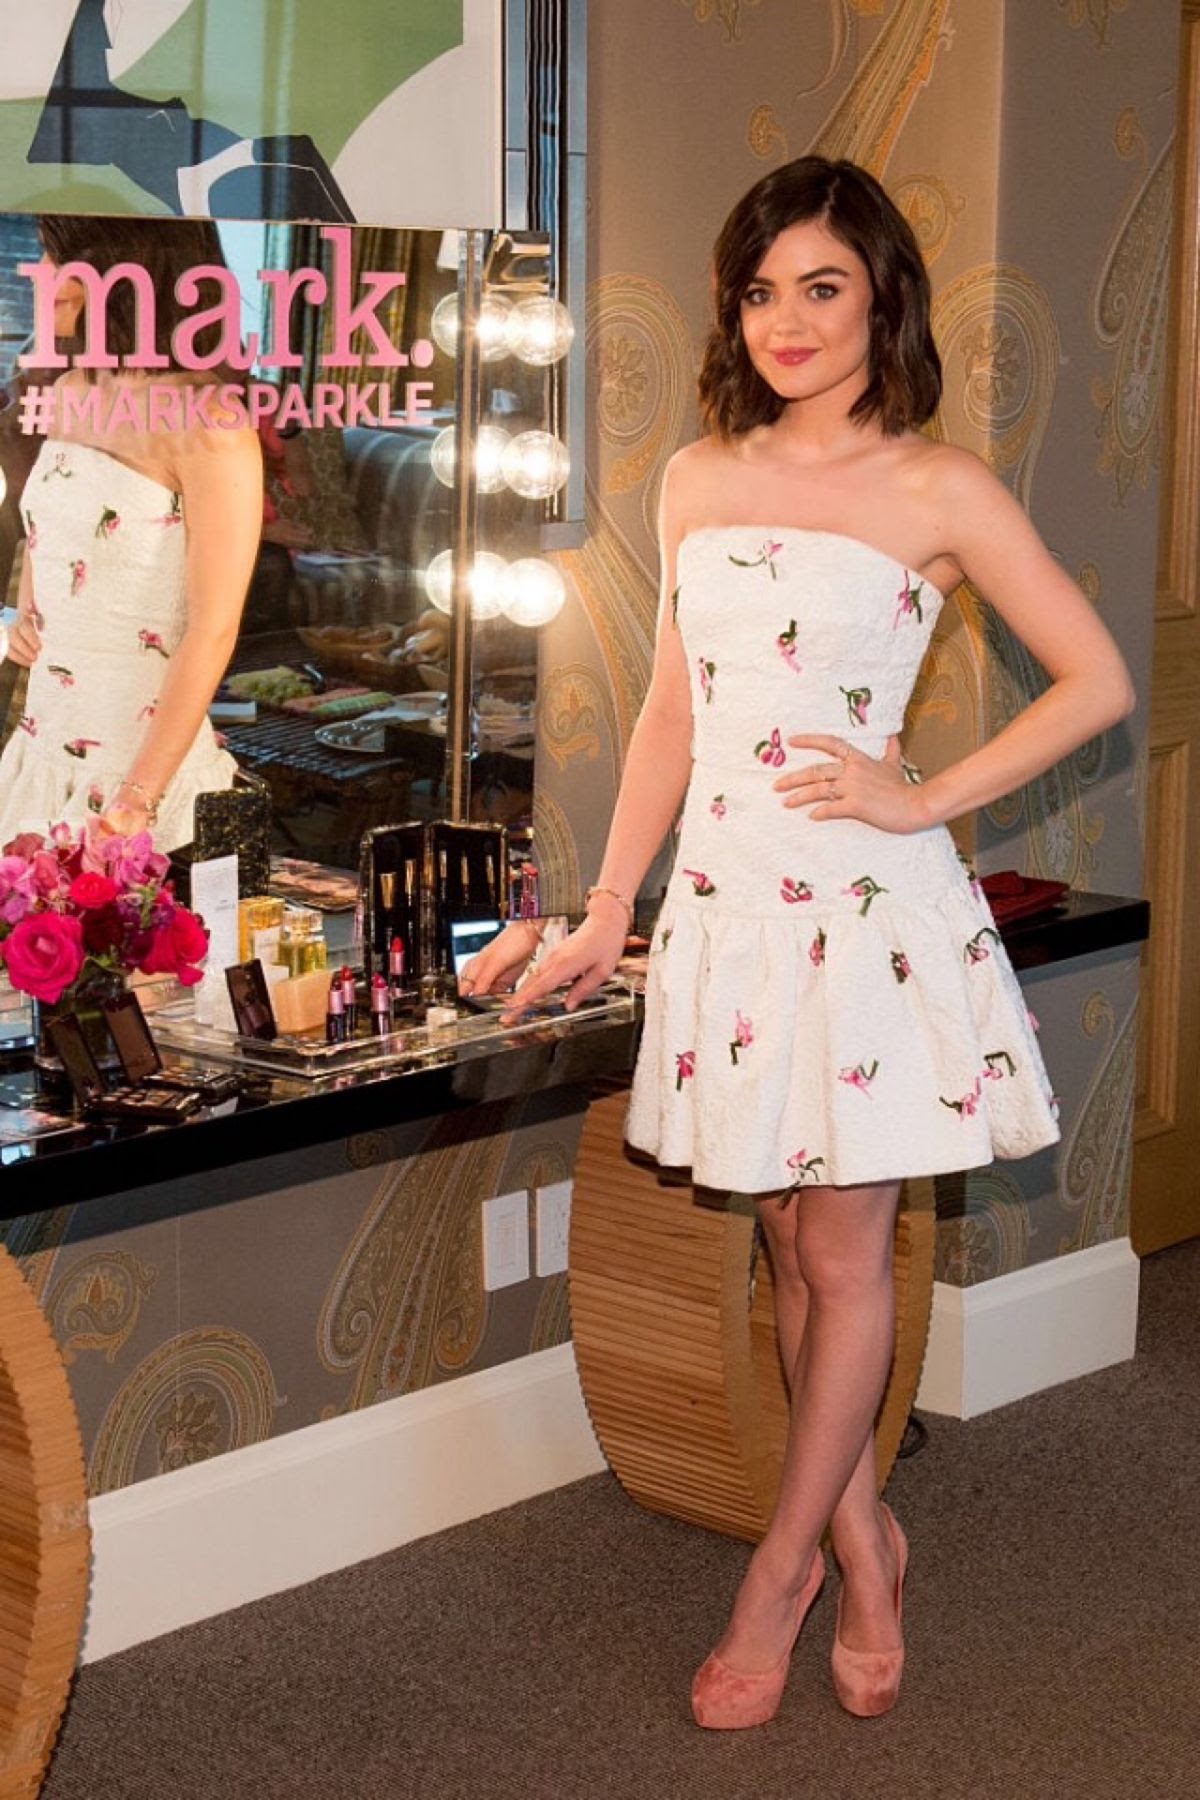 LUCY HALE at Mark. Holiday Collection Event at Crosby Hotel in New York 10/28/2015